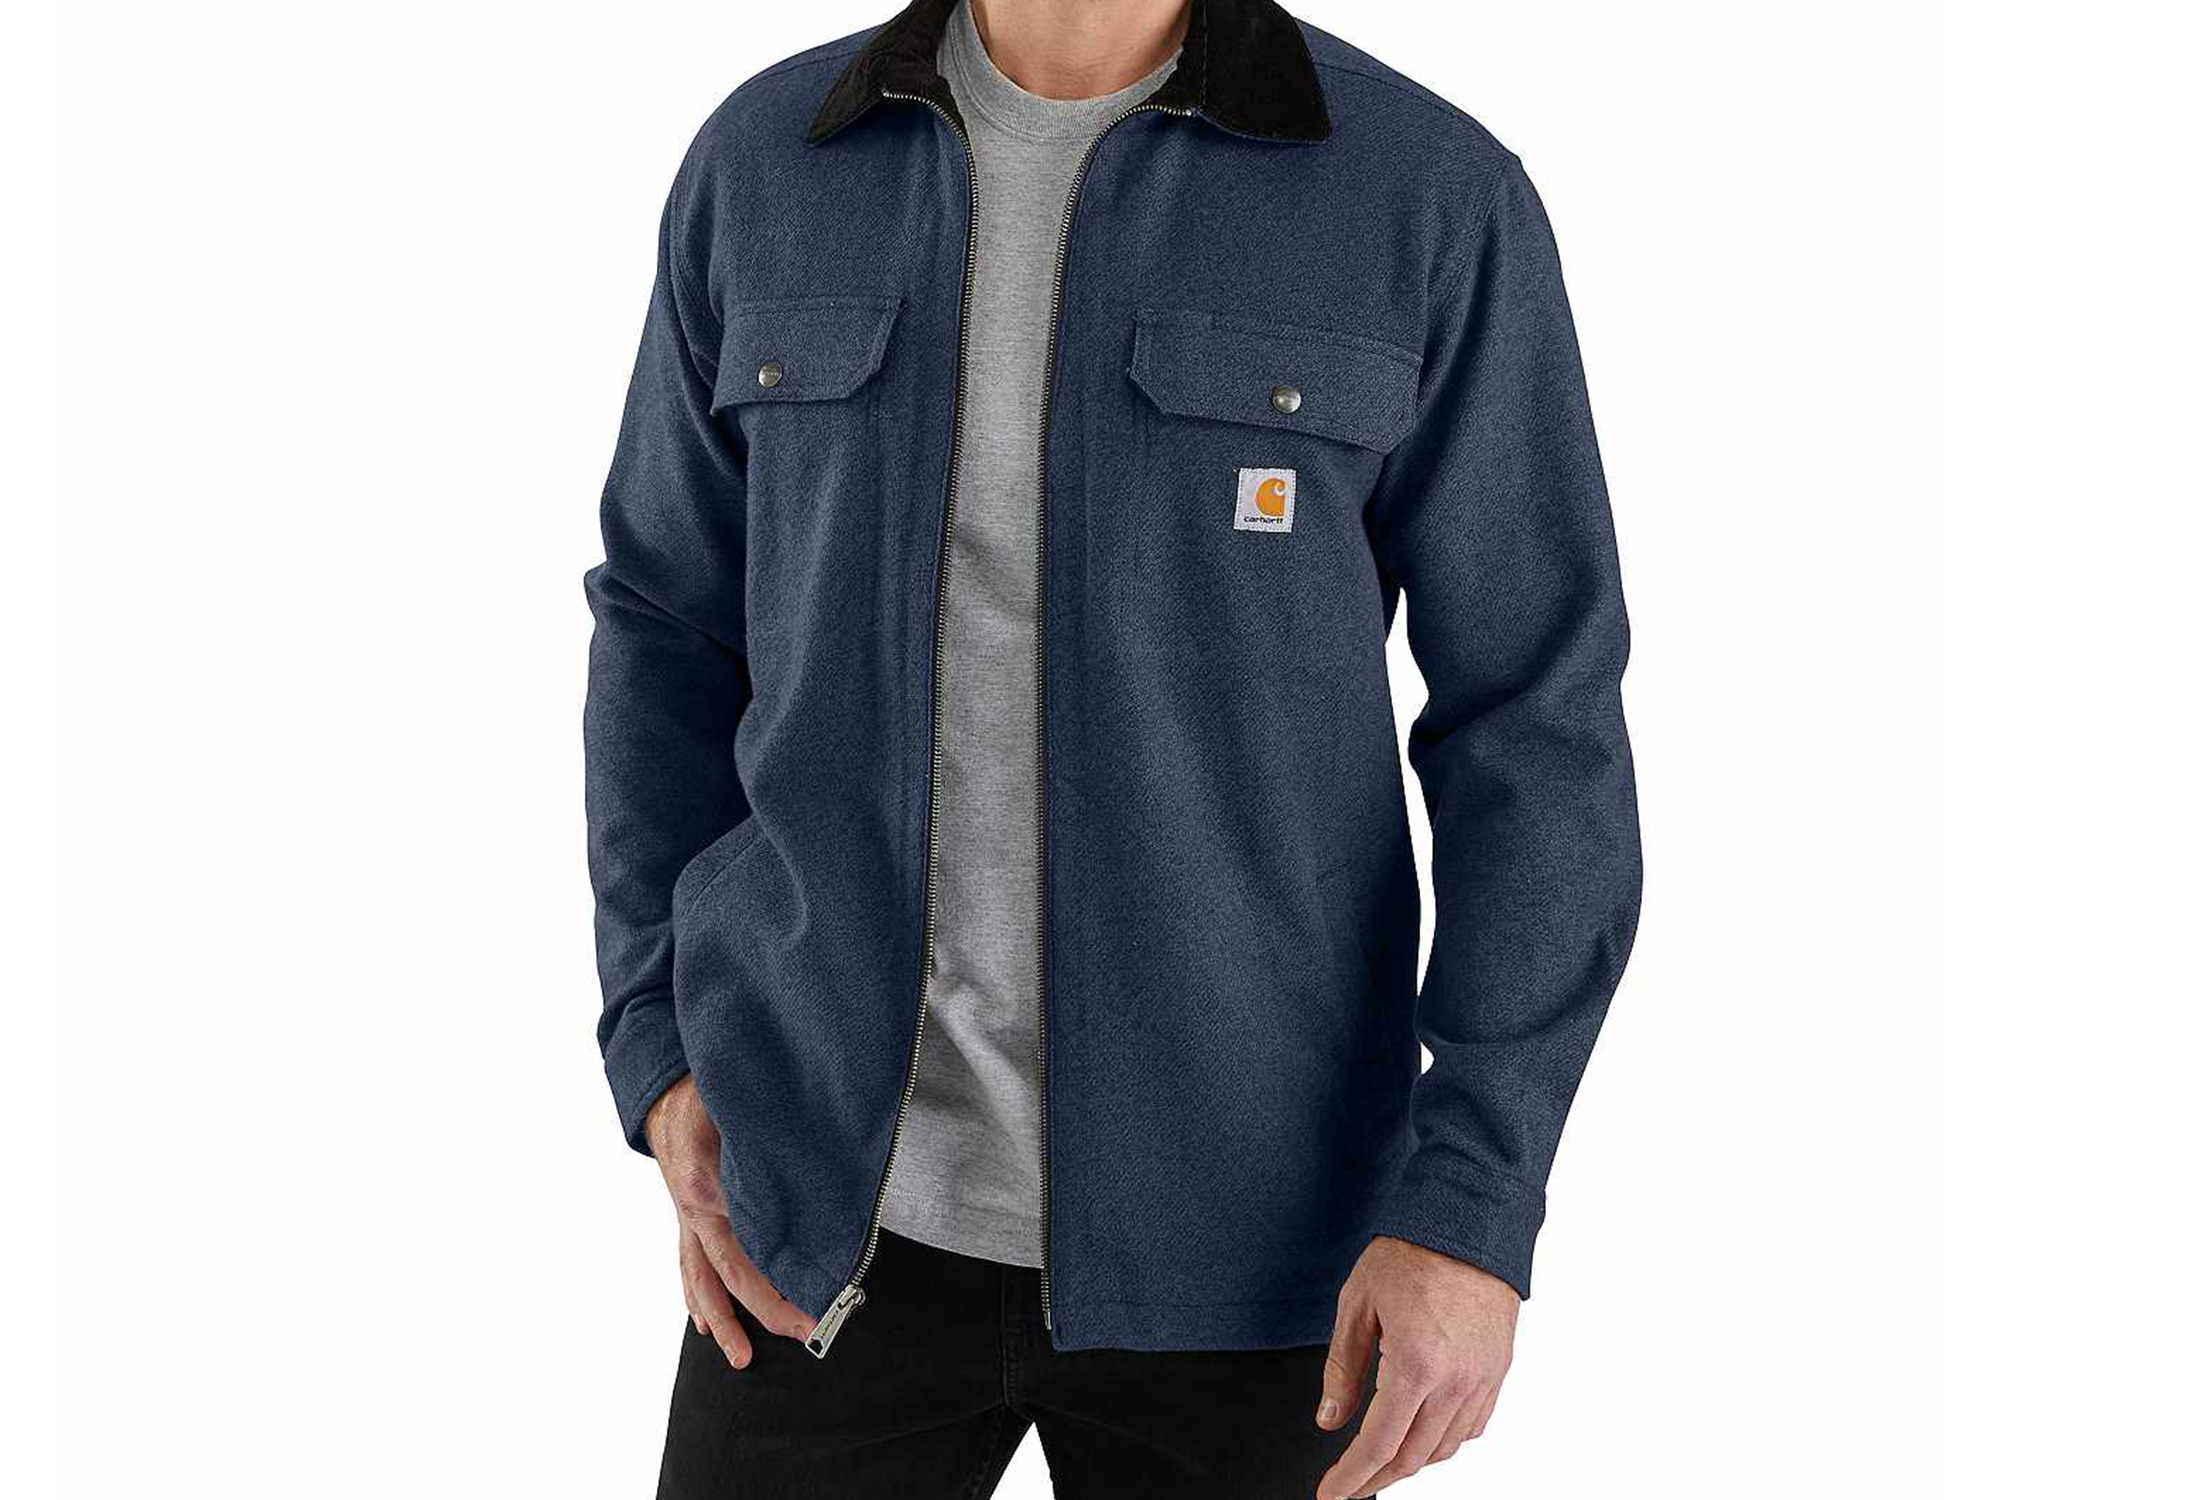 Carhartt Rain Defender Shirt Jacket